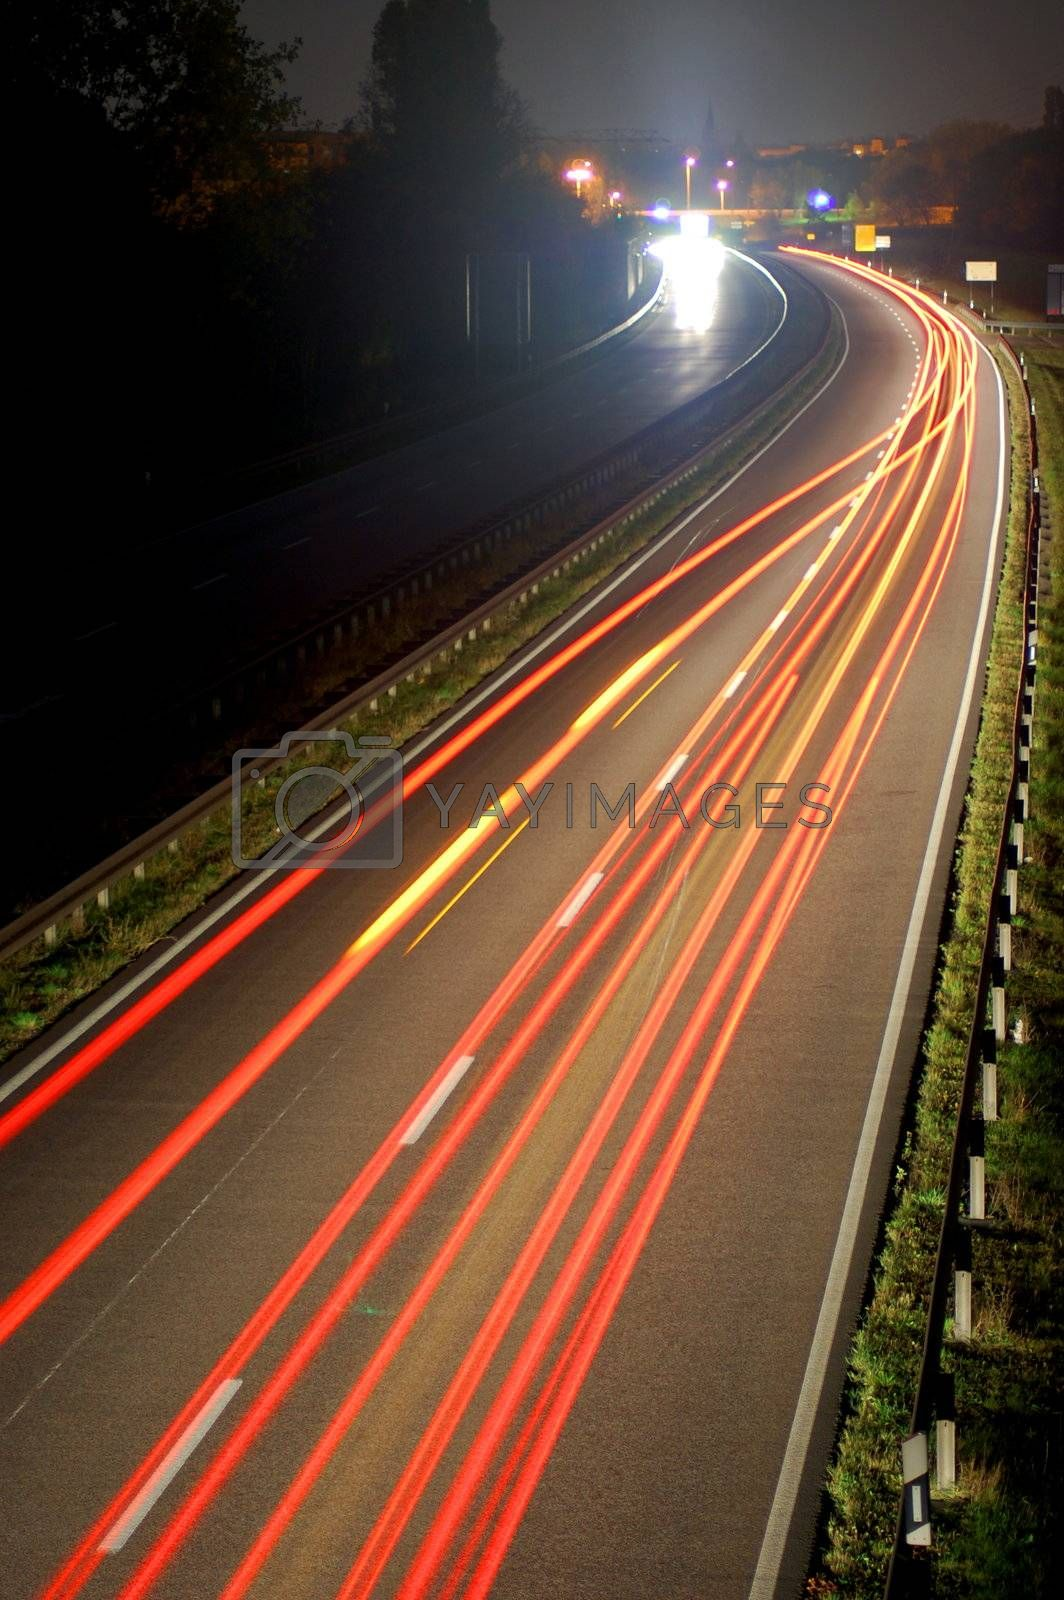 road with car traffic at night and blurry lights showing speed and motion